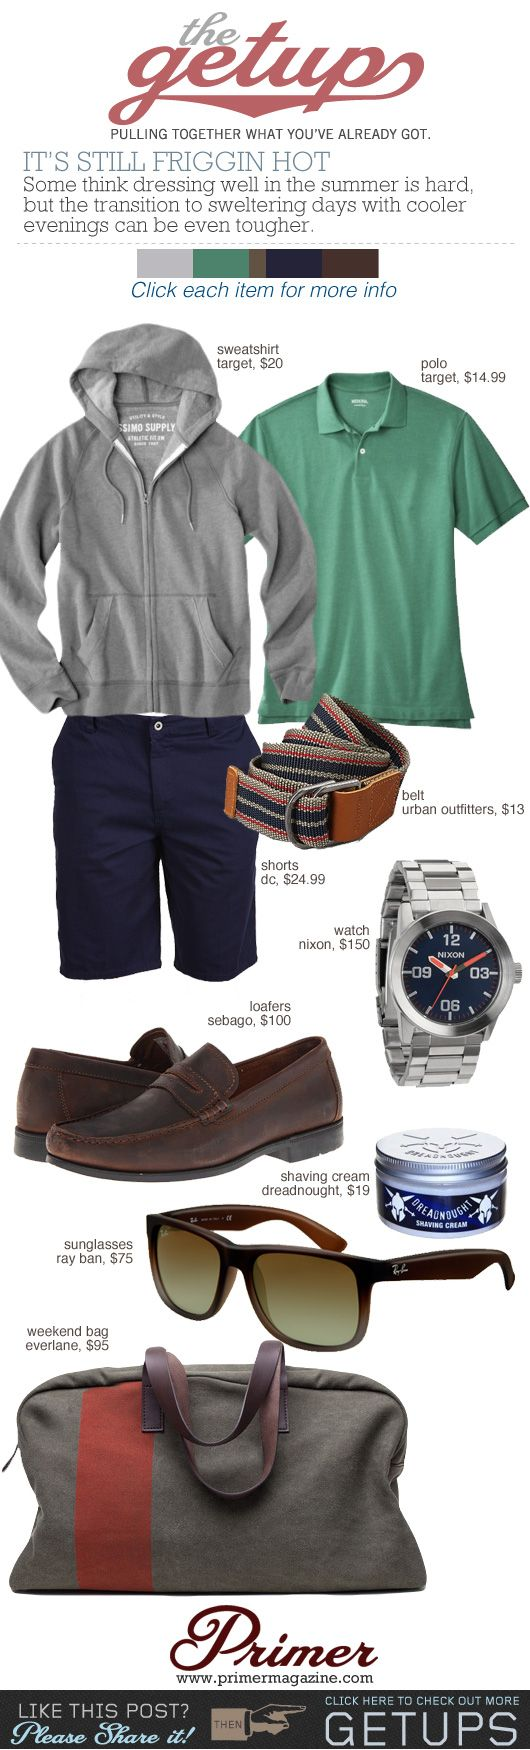 The Getup: It's Still Friggin Hot | Primer  I may pass on the Penny loafers though. Great look all-around.